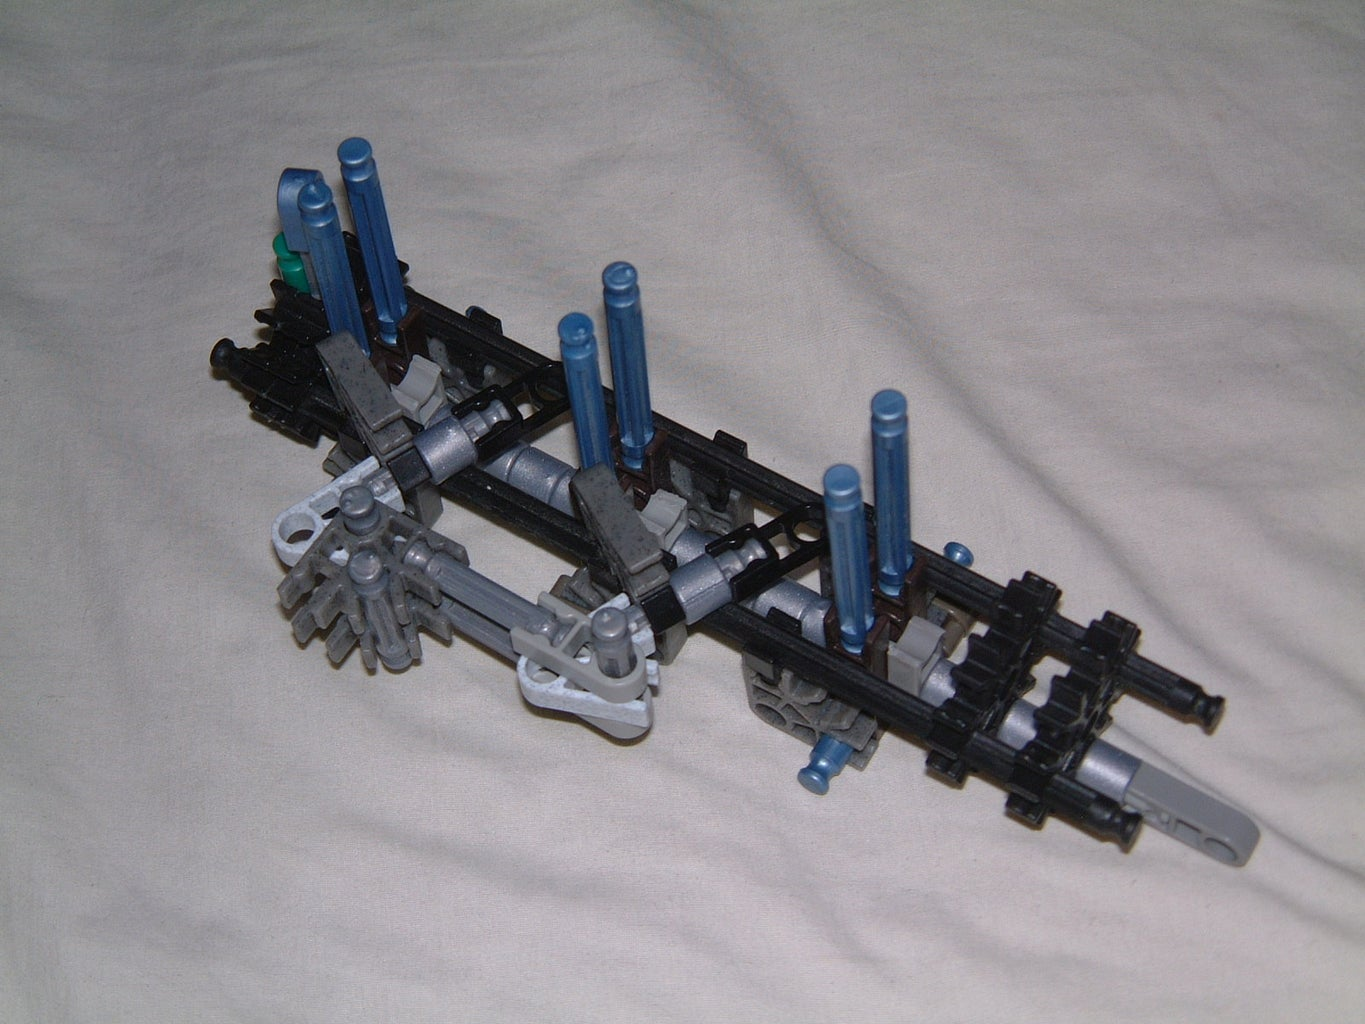 -front End- the Ammunition Hopper, Loading Arms, and Barrel.